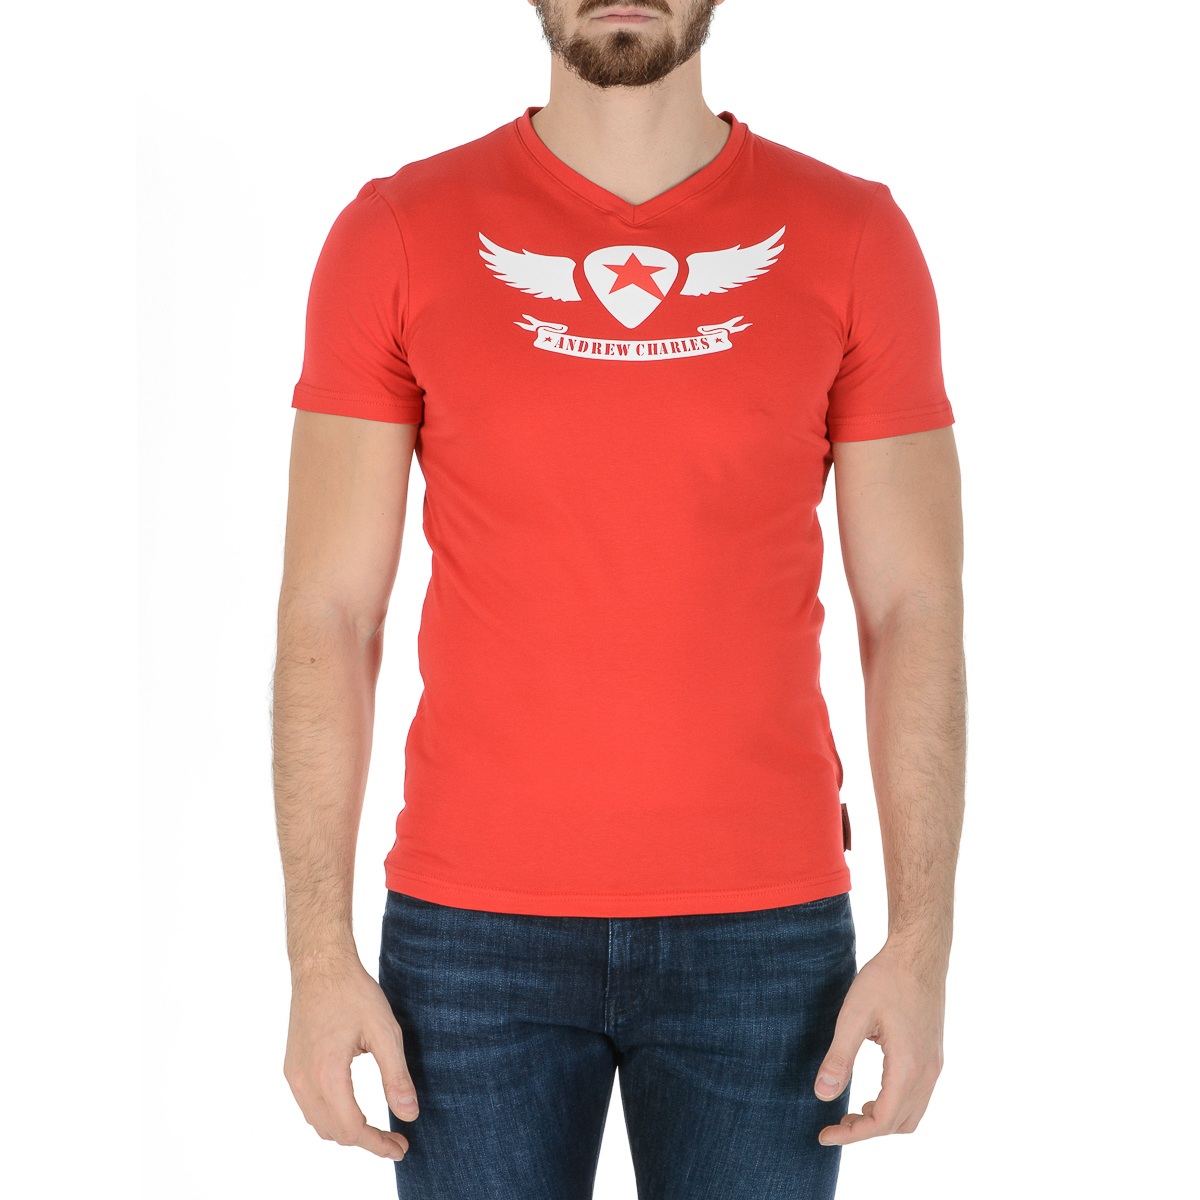 Primary image for Andrew Charles Mens T-Shirt Short Sleeves V-Neck Red KENAN